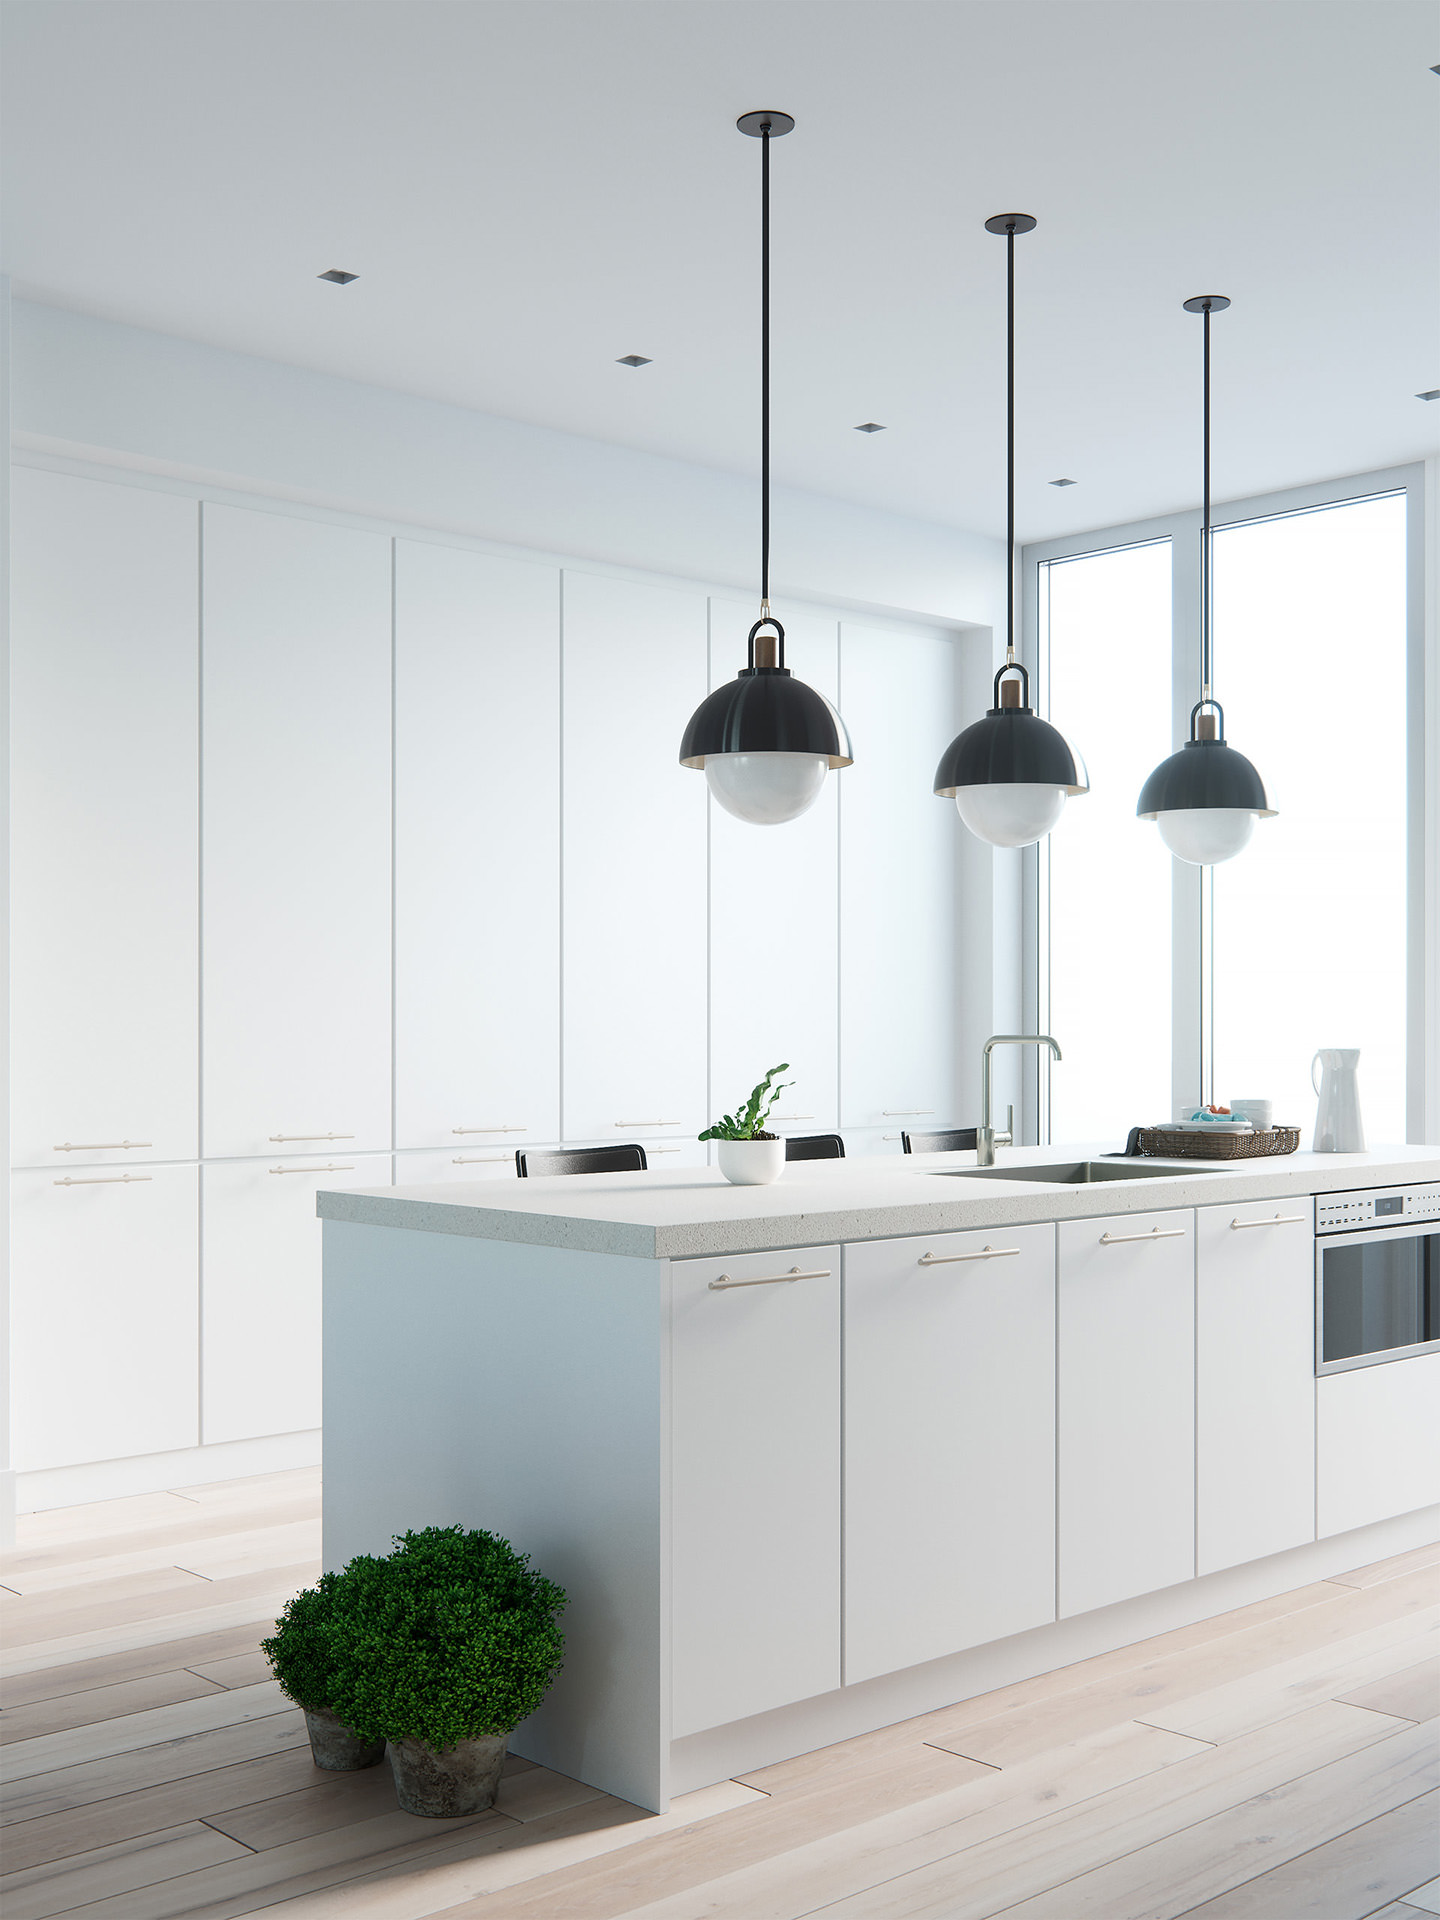 3D-interior-rendering-kitchen-white-table-morning-1